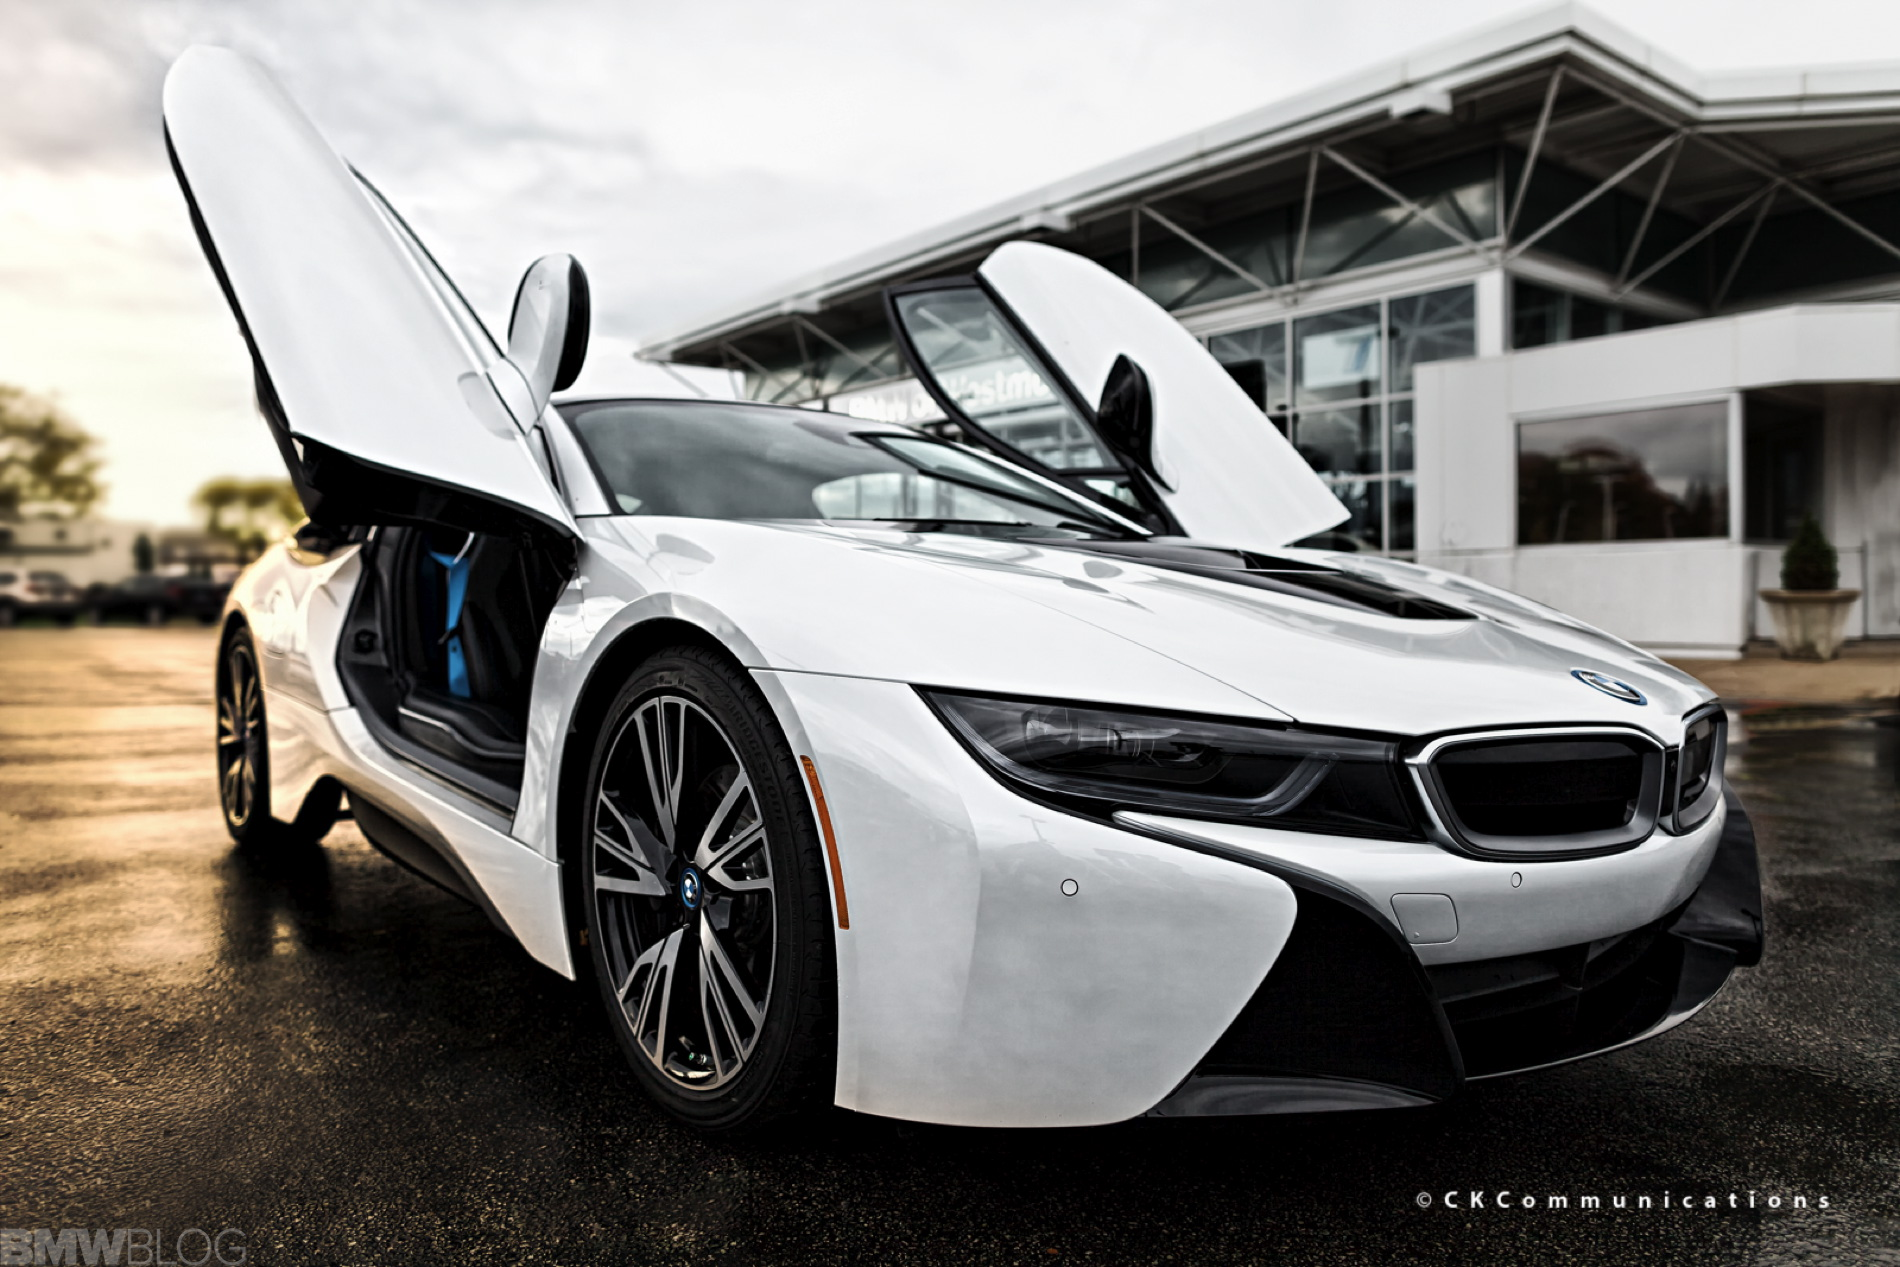 Bmw May Have To Increase I8 Production To Meet High Demand